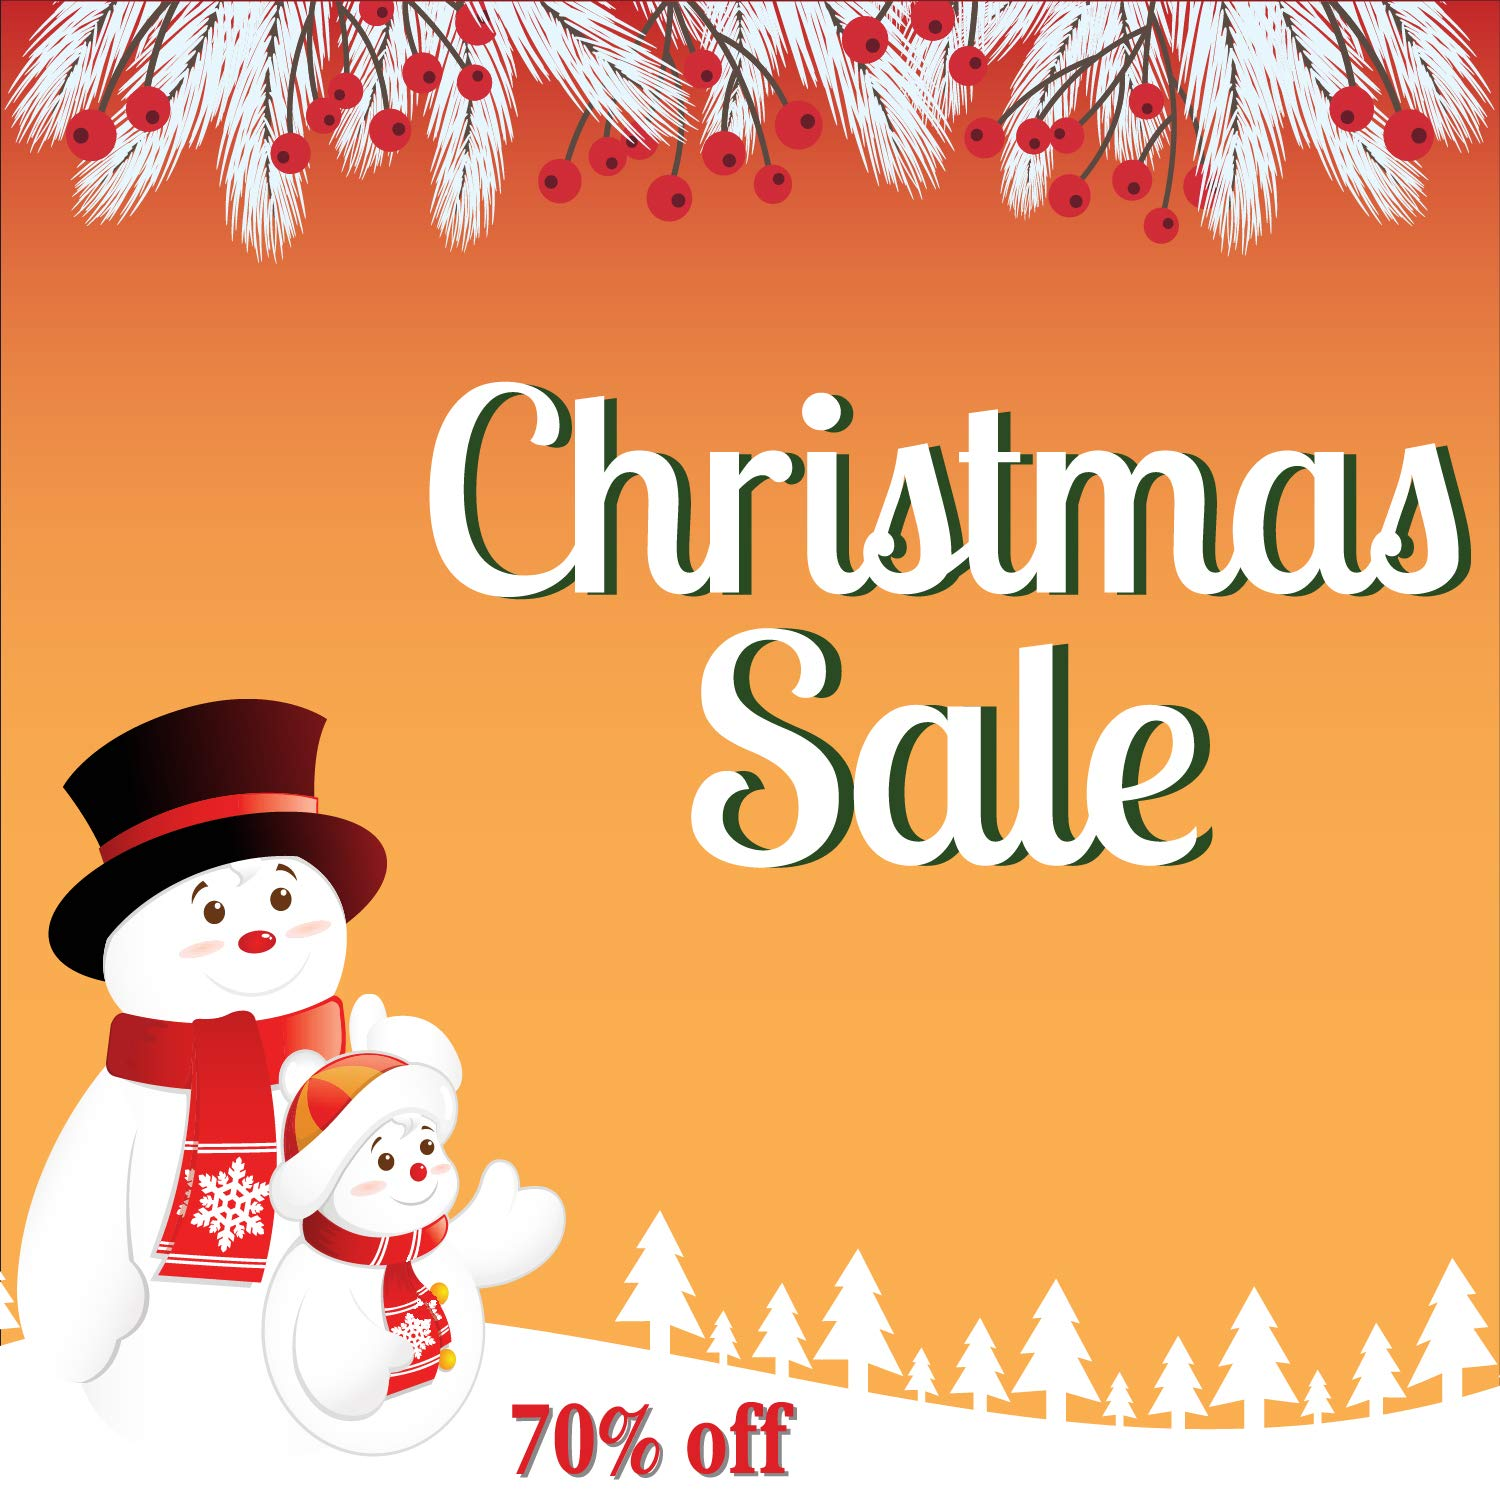 8f843c3ef8 Amazon.com: Christmas Sale Banner, Holiday Sale Advertising Banner Sign,  Heavy Duty 11 Oz Vinyl, Metal Grommets & Hemmed Edges, Perfect for Outdoor  Business ...